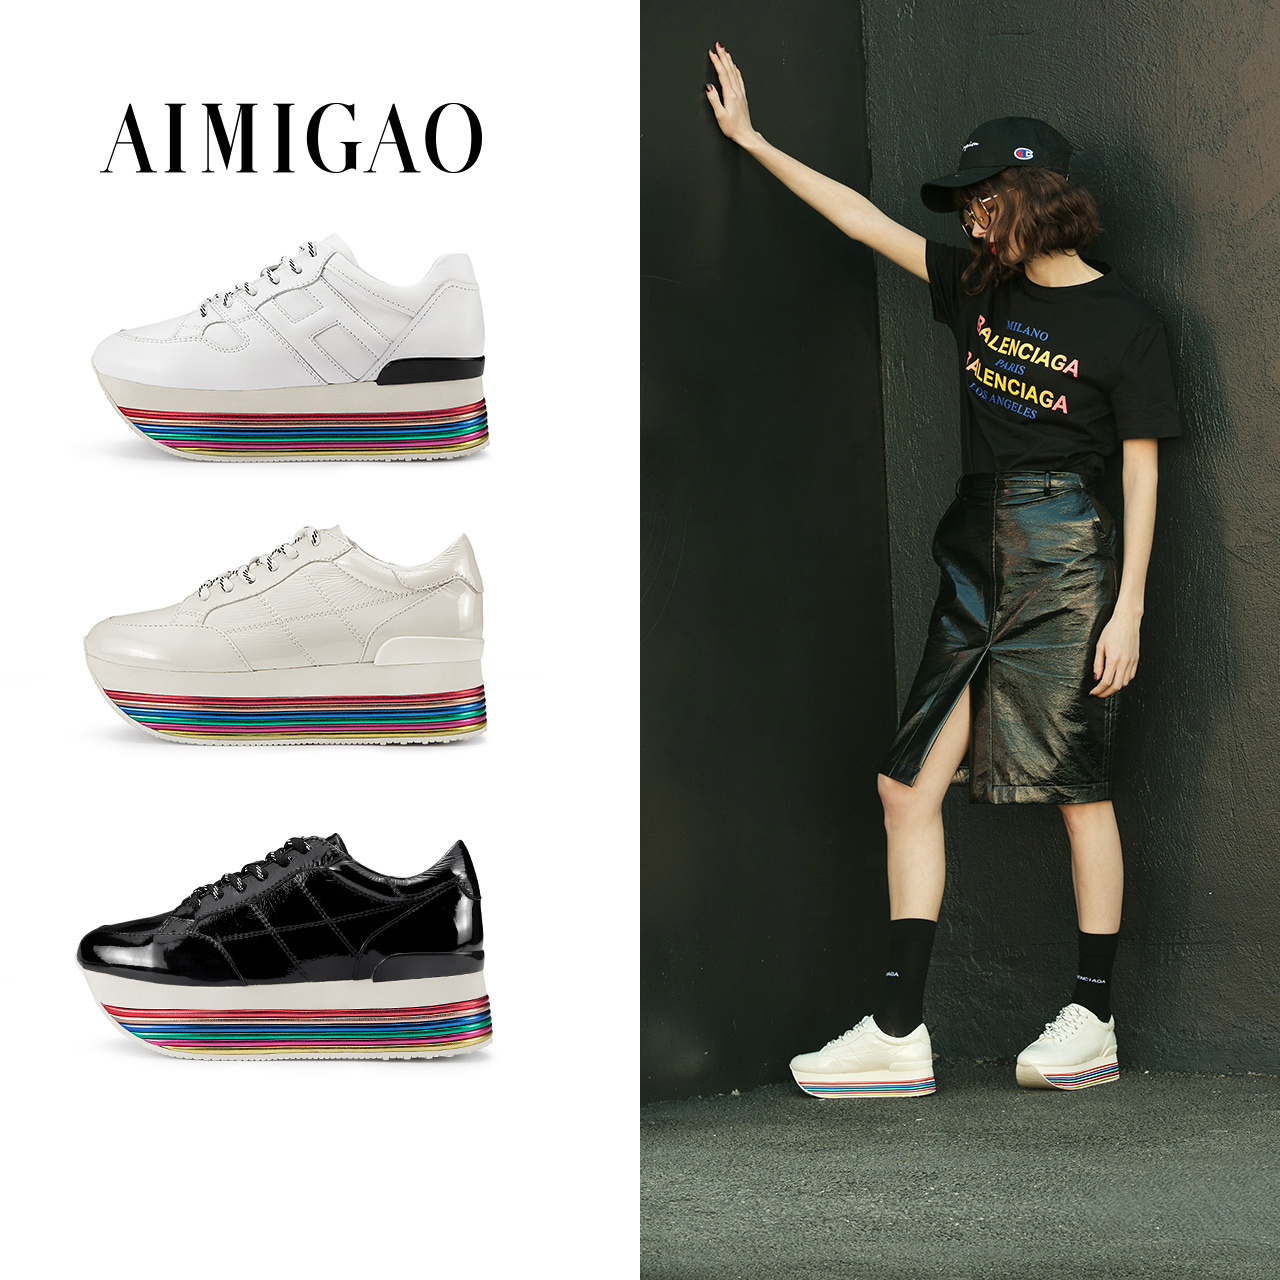 AIMIGAO 2018 New Spring Flat Platform Women Leather Sneakers Shoes Fashion Rainbow Thick Bottom Comfortable Women'S Casual Shoes minika new arrival 2017 casual shoes women multicolor optional comfortable women flat shoes fashion patchwork platform shoes